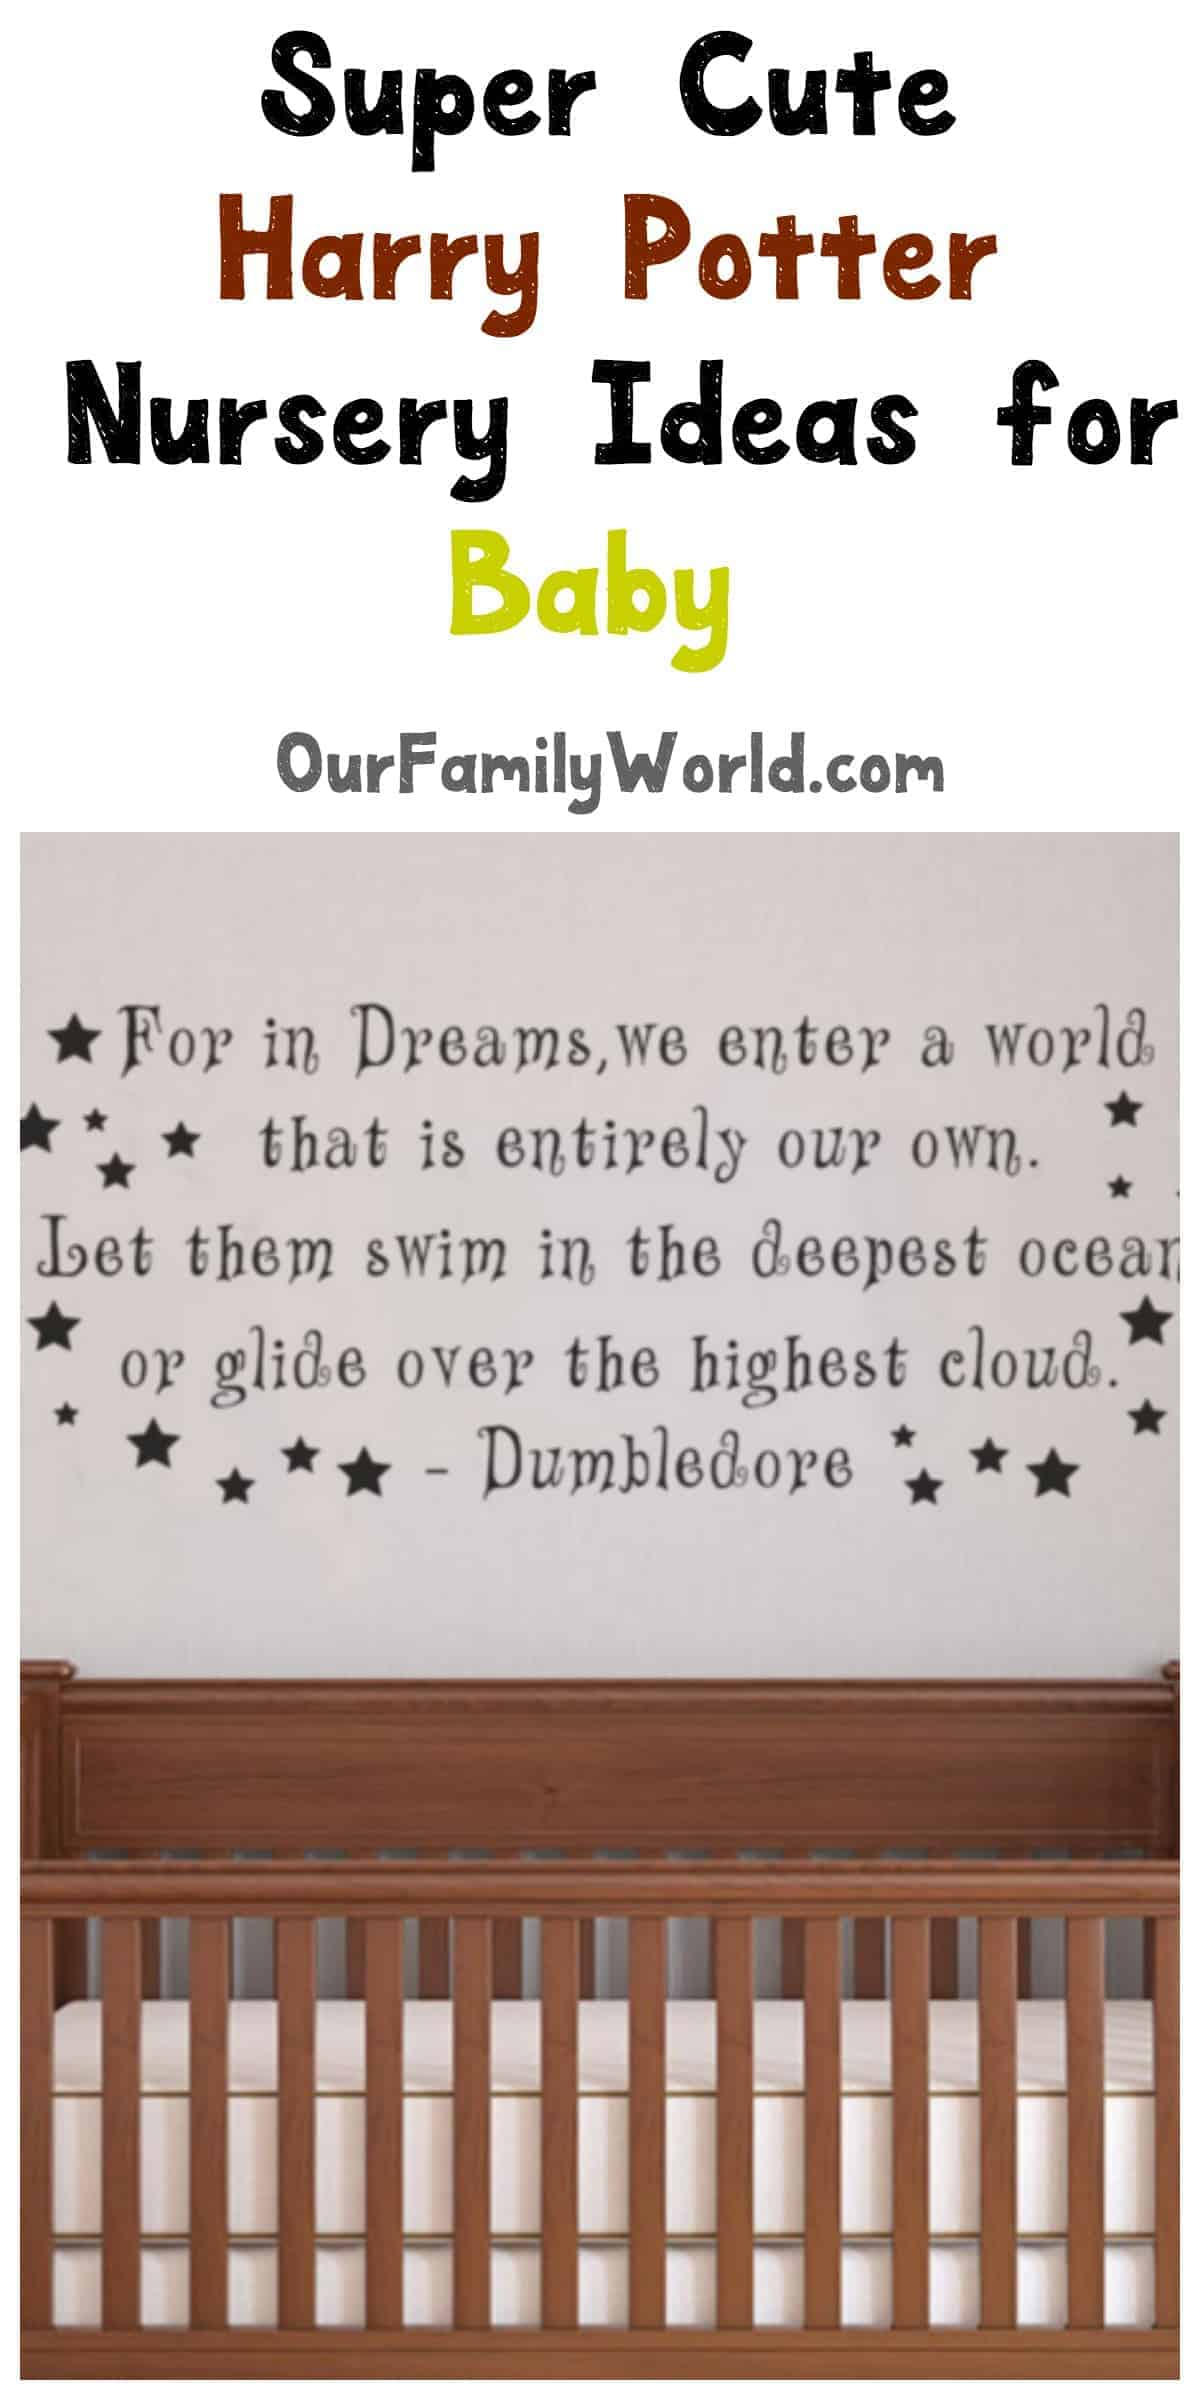 SUPER CUTE HARRY POTTER IDEAS FOR BABY